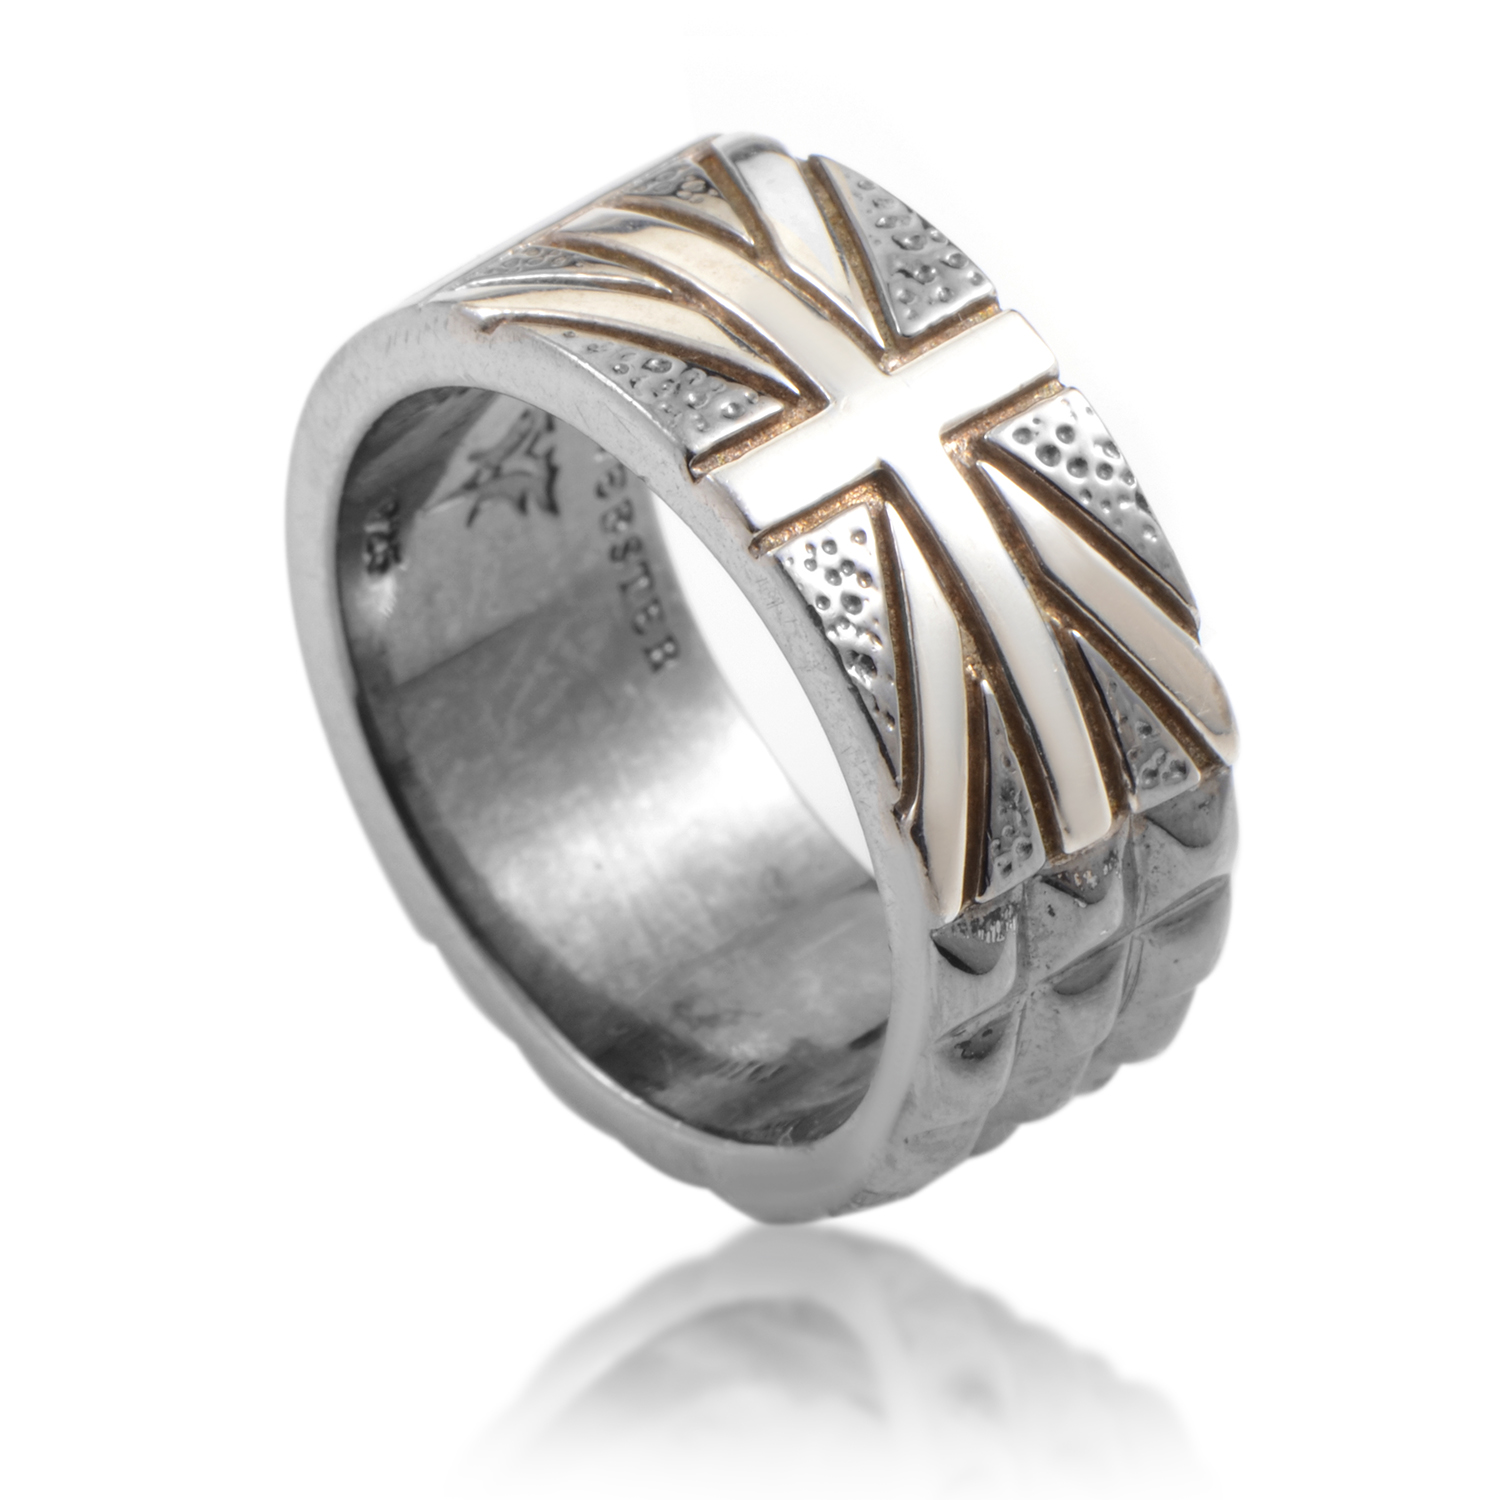 Alchemy in the UK Silver & Onyx Union Jack Ring 3013704003